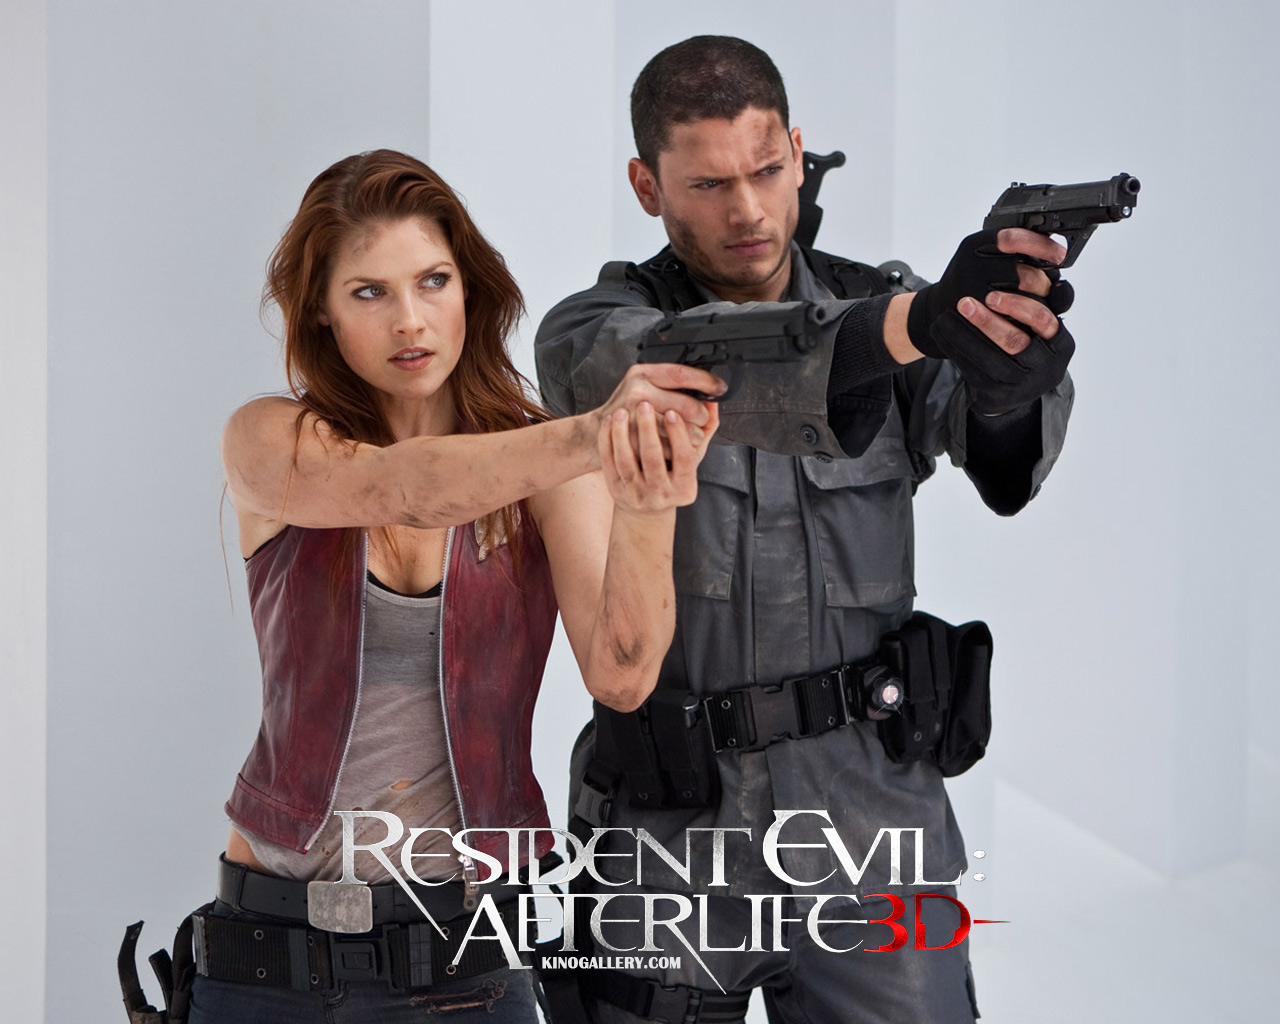 Images Resident Evil - Movies Resident Evil 4: Afterlife Milla Jovovich Movies film